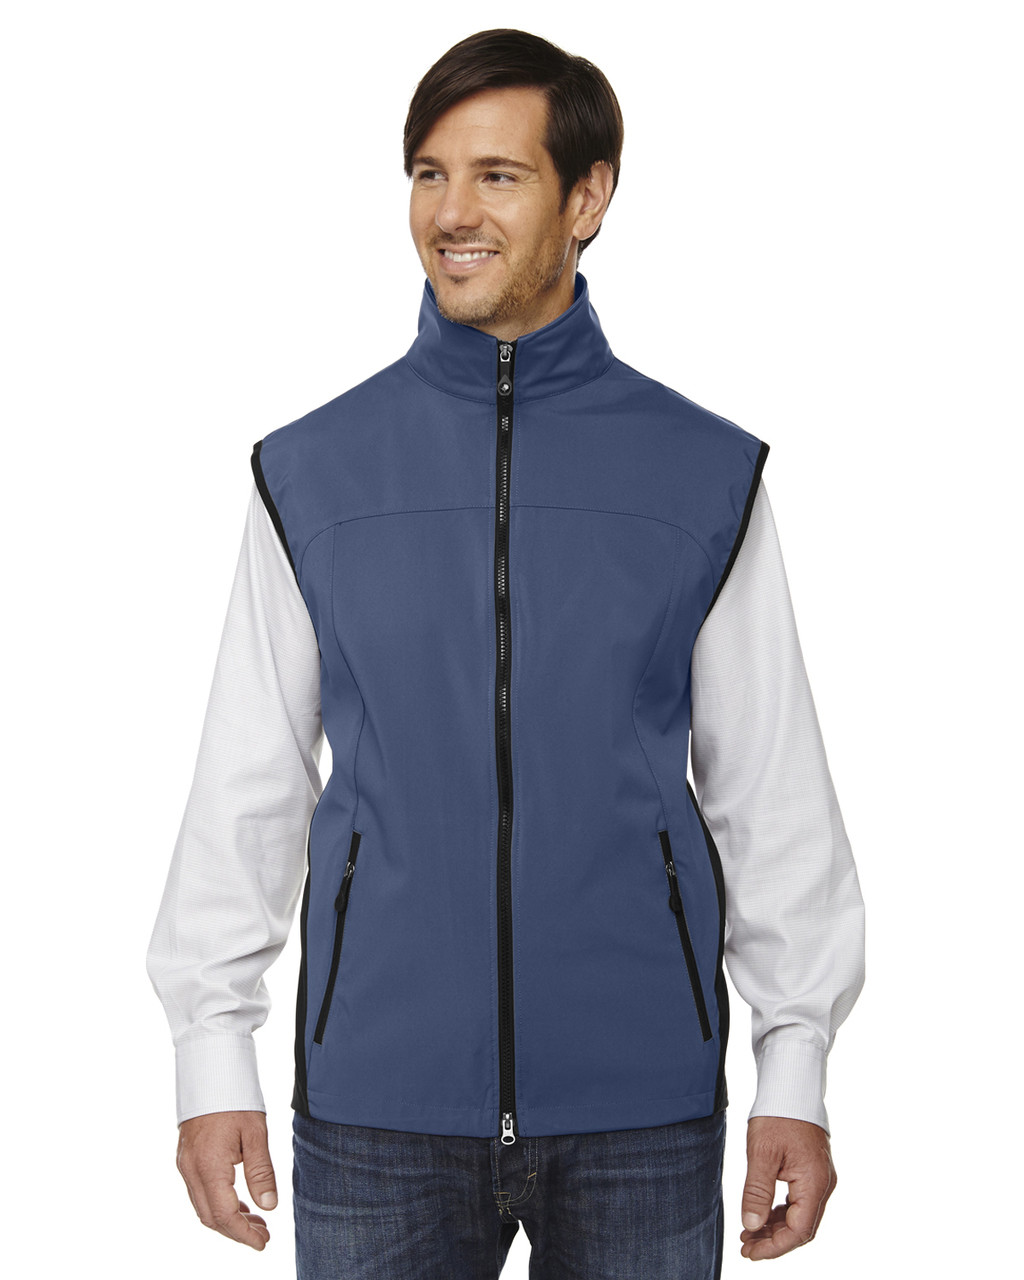 Regata Blue - 88127 North End Men's Soft Shell Performance Vest | Blankclothing.ca